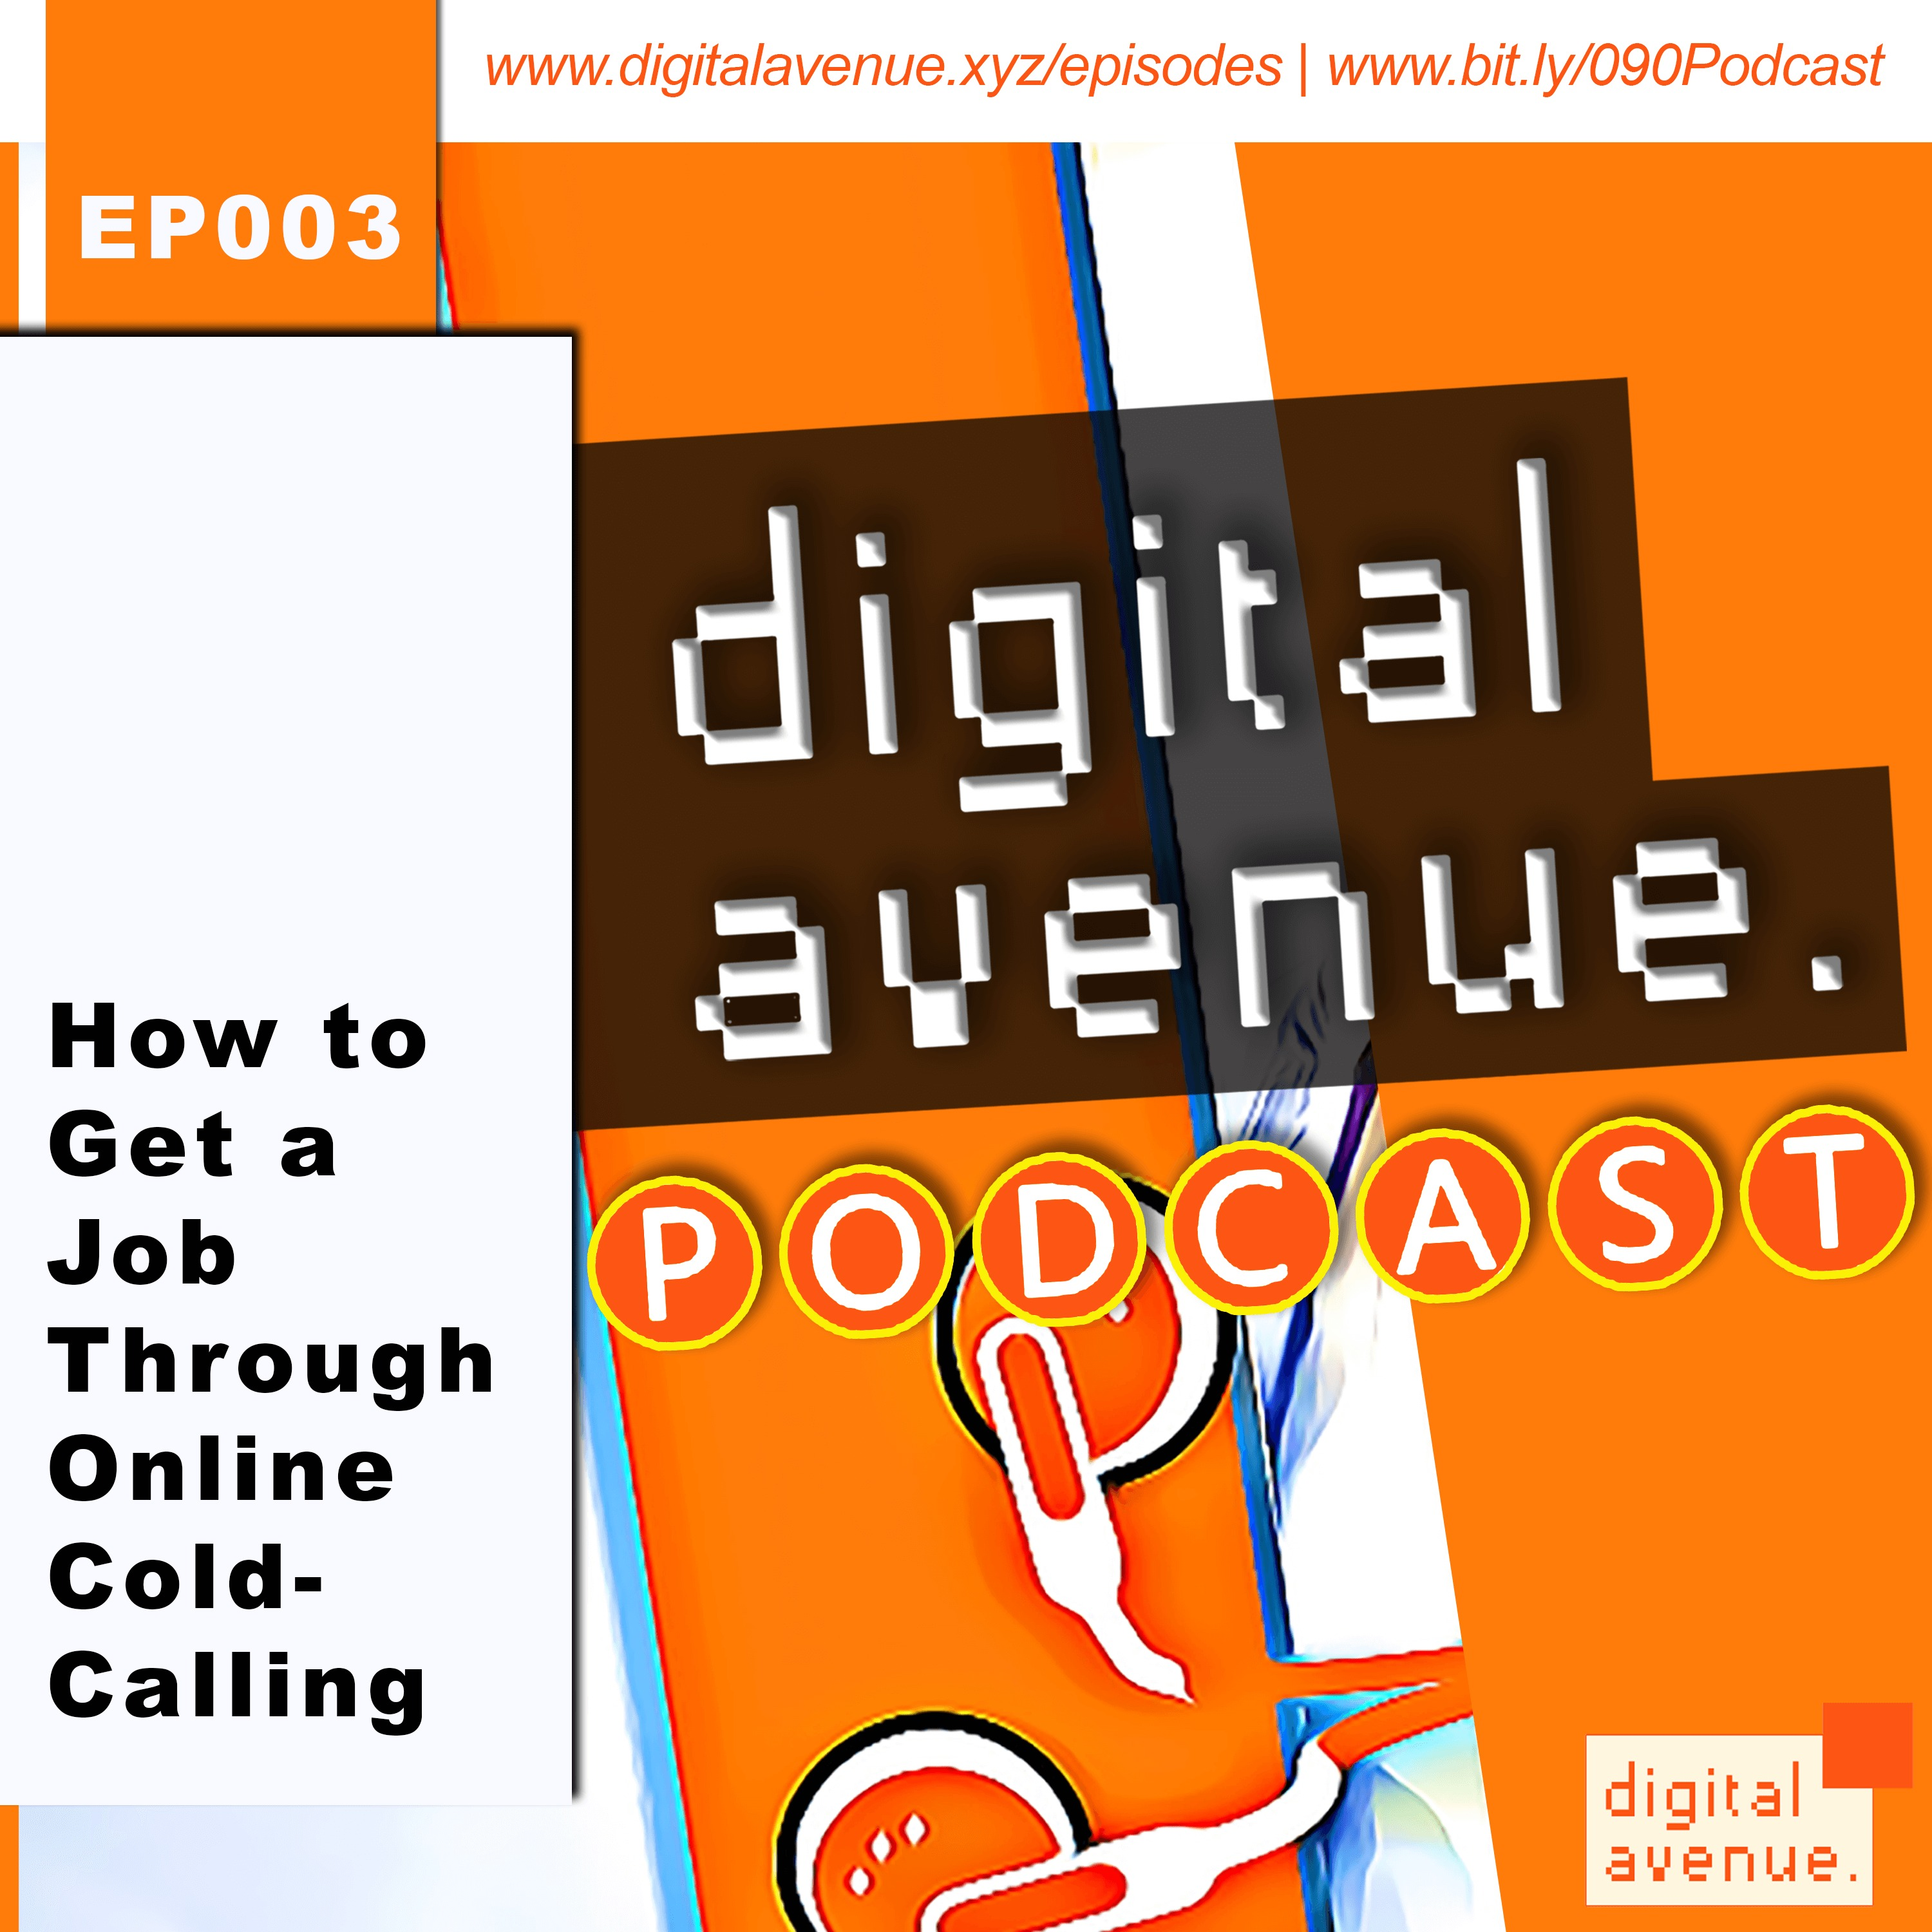 How to Get a Job Through Online Cold-Calling